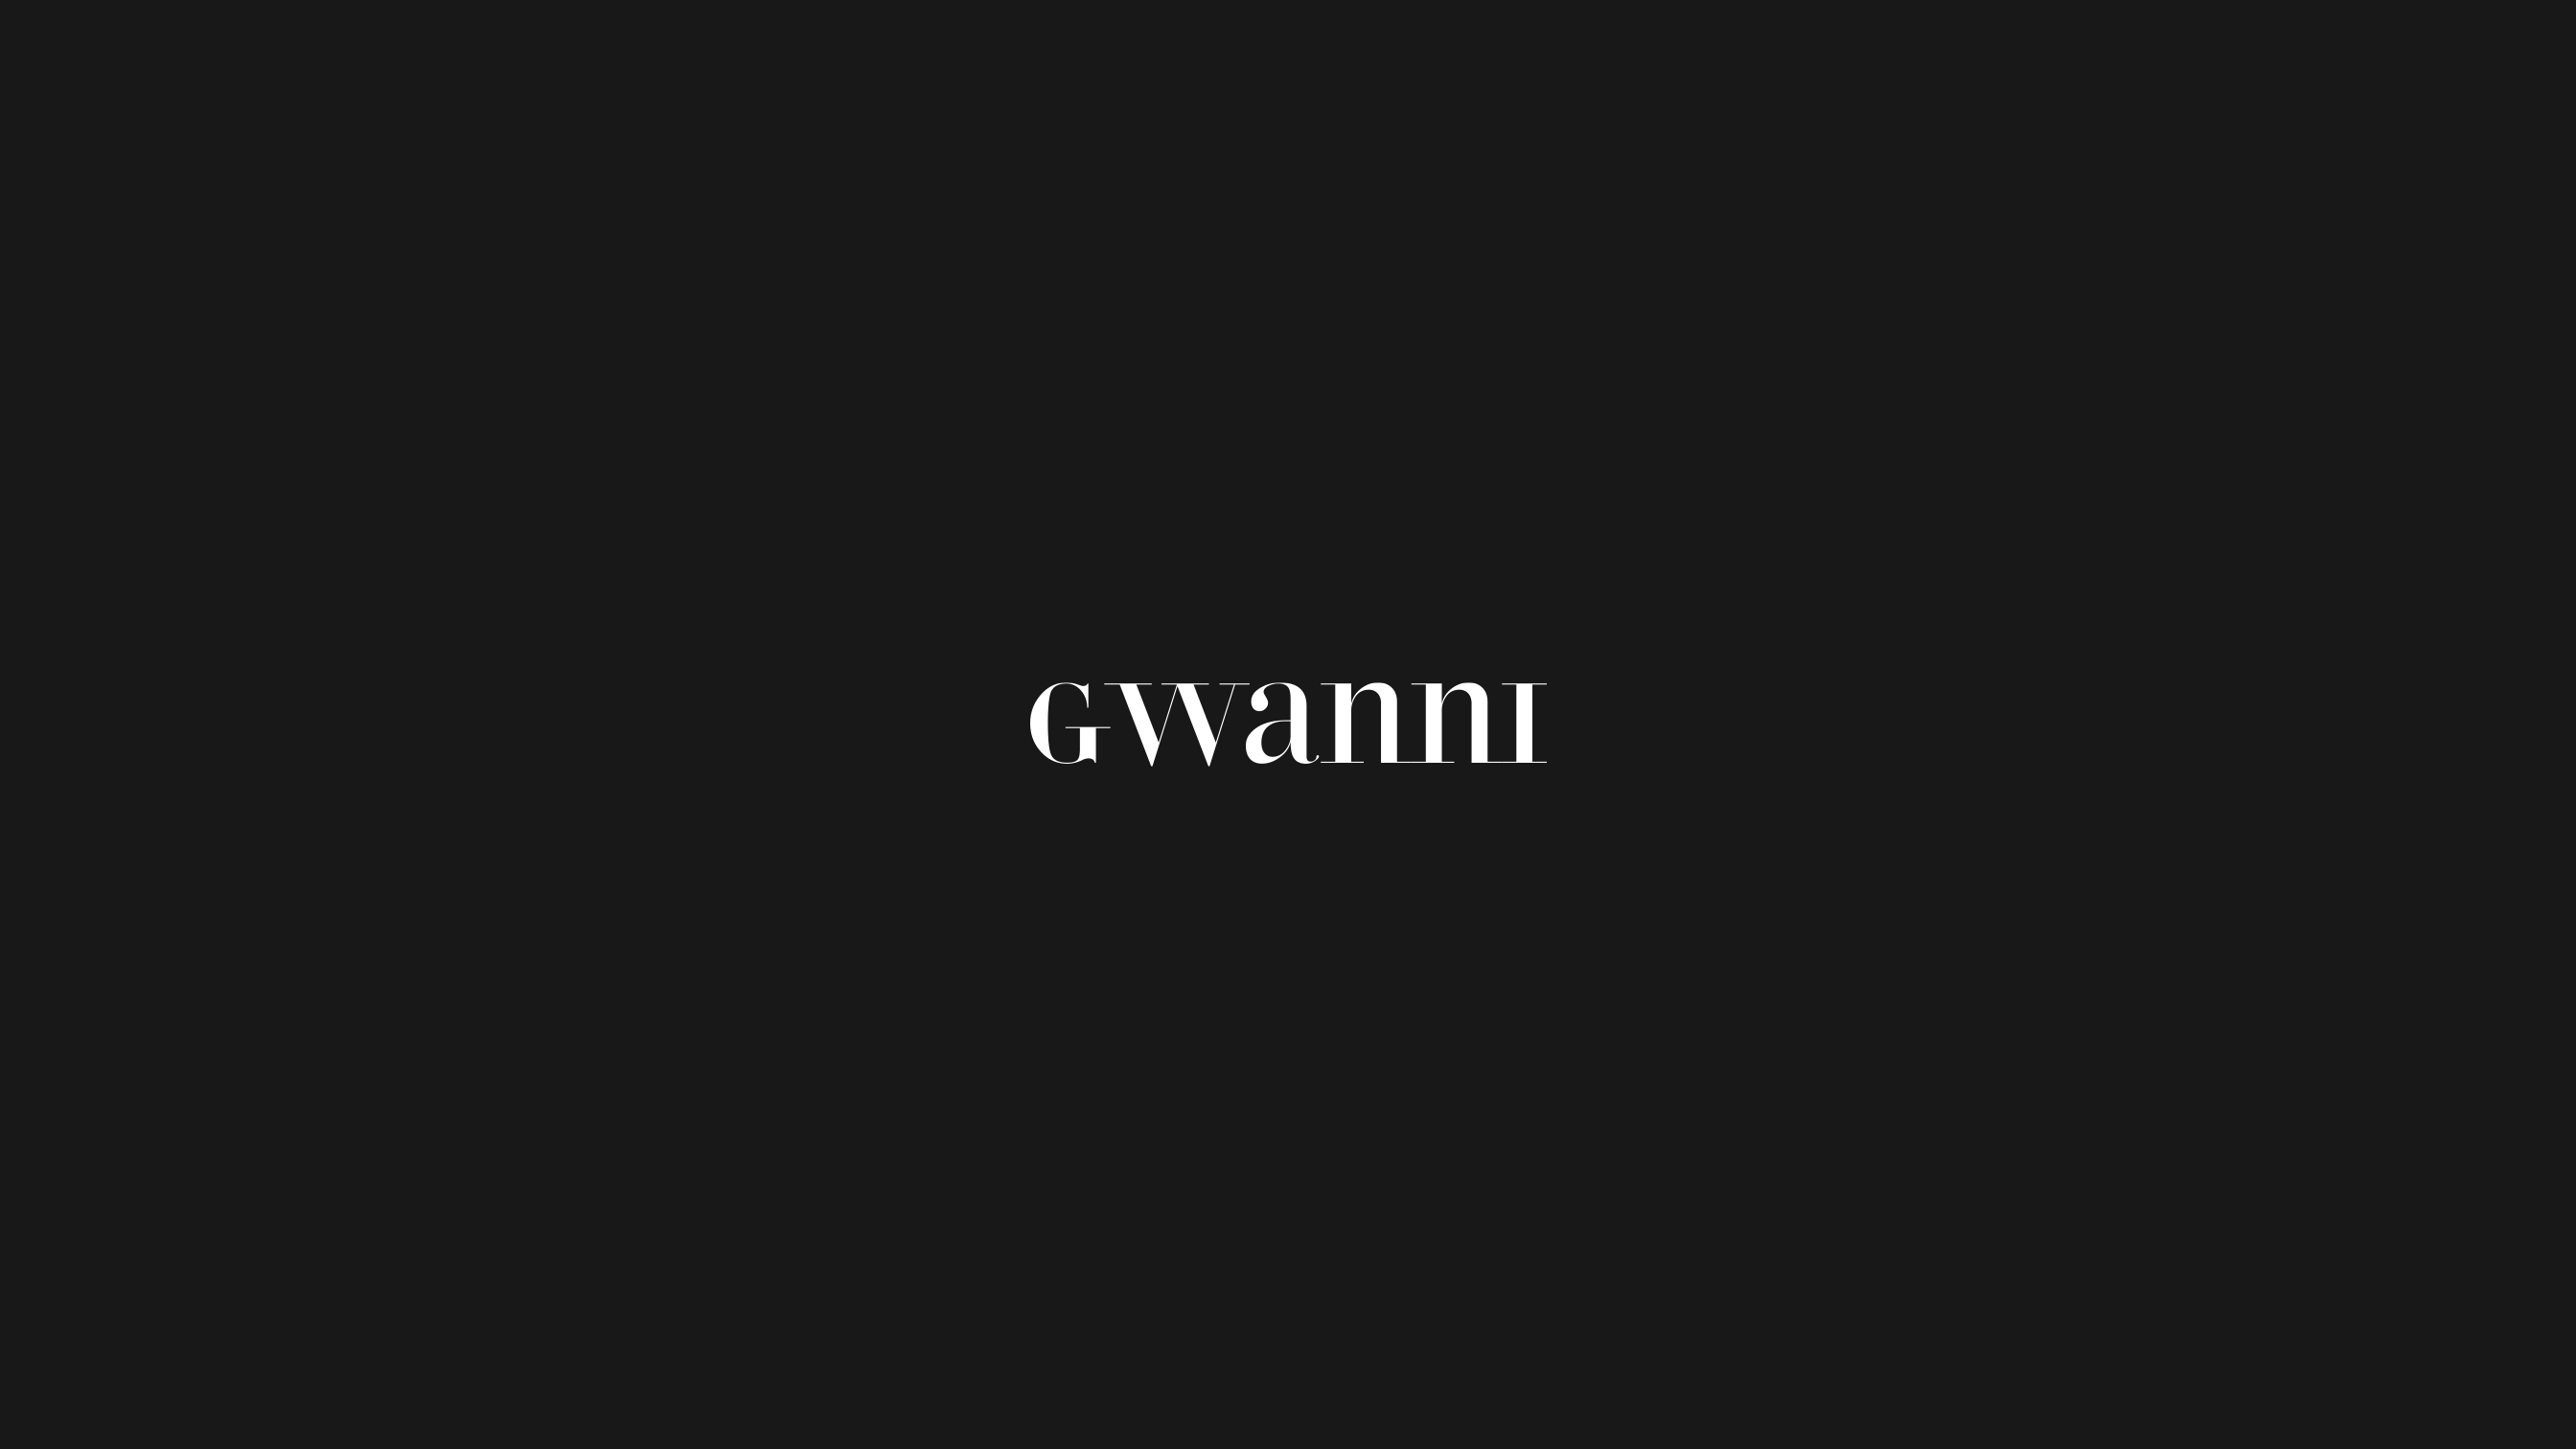 showcase-logotype-gwanni